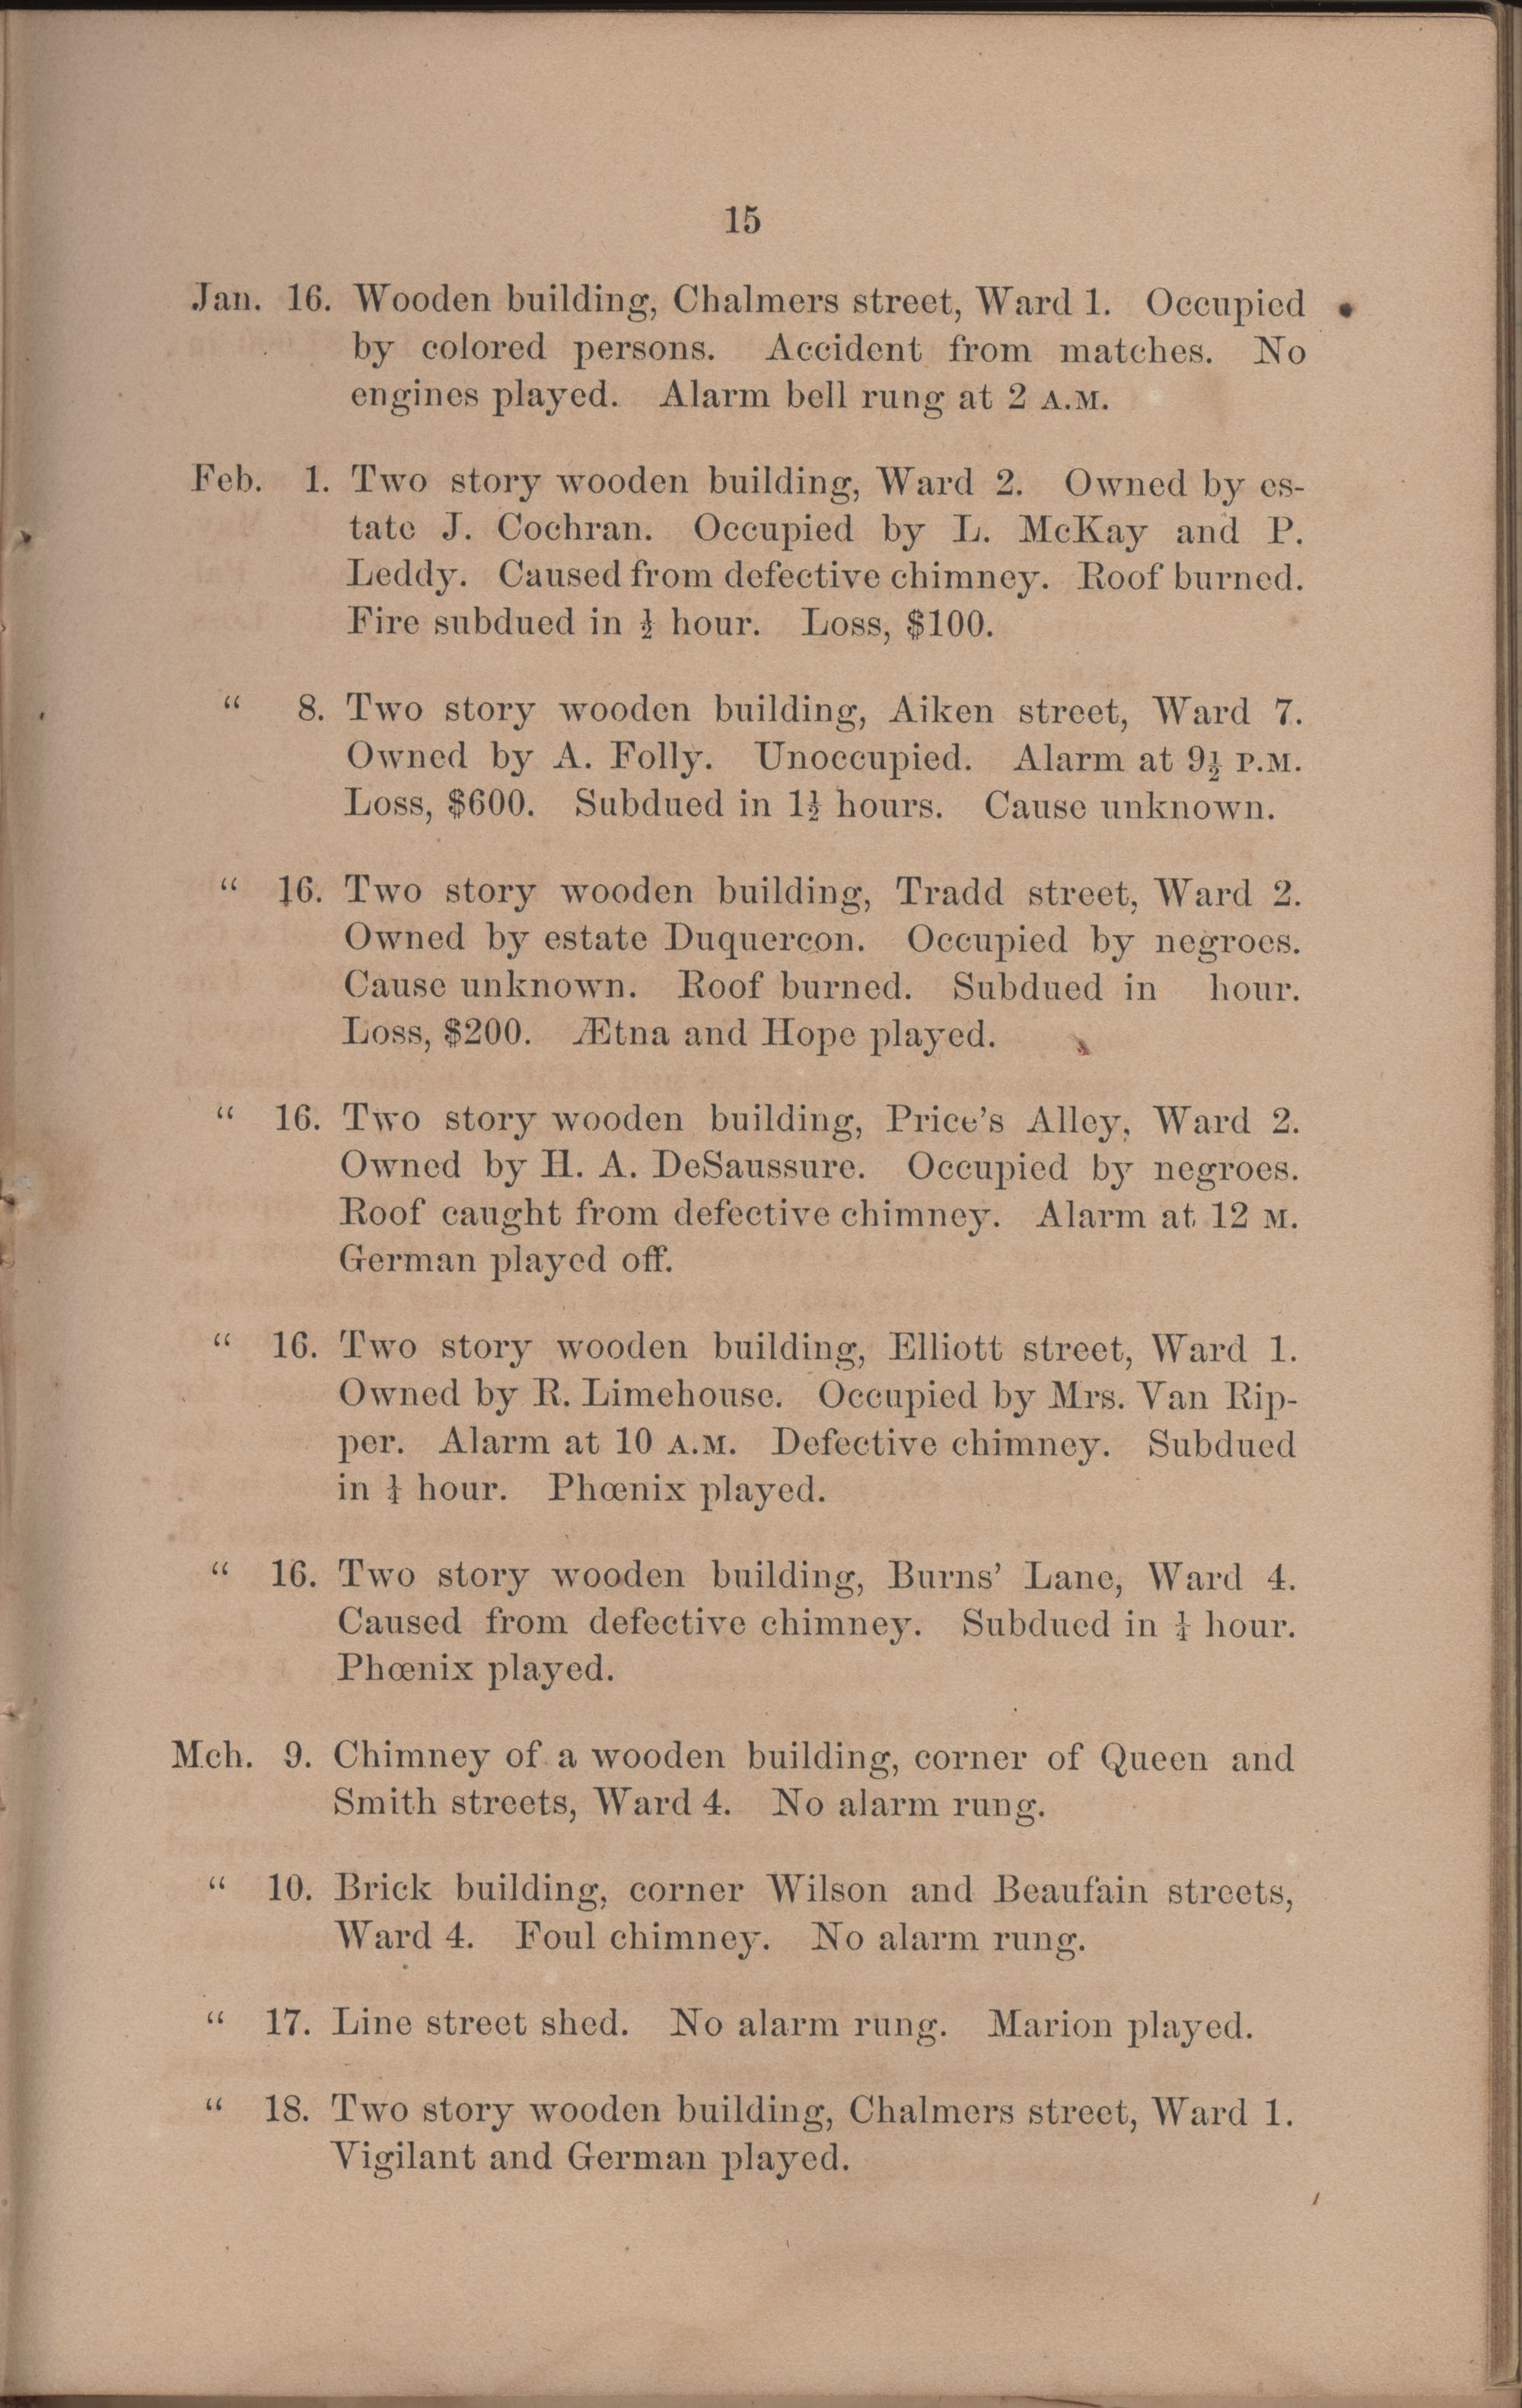 Annual Report of the Chief of the Fire Department of the City of Charleston, page 111